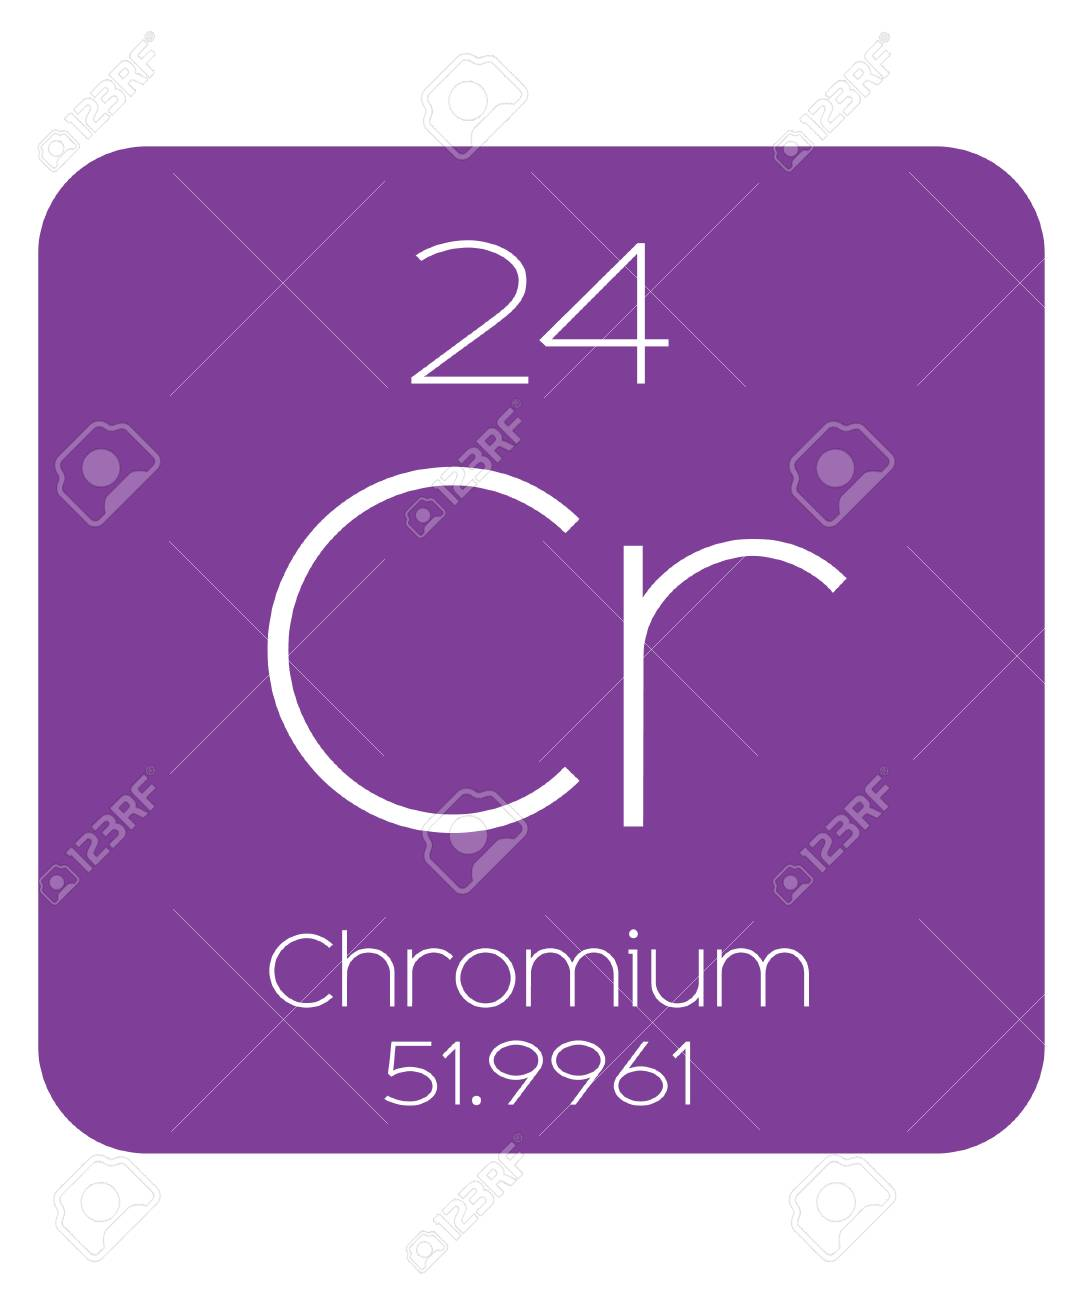 The Periodic Table Of The Elements Chromium Stock Photo Picture And